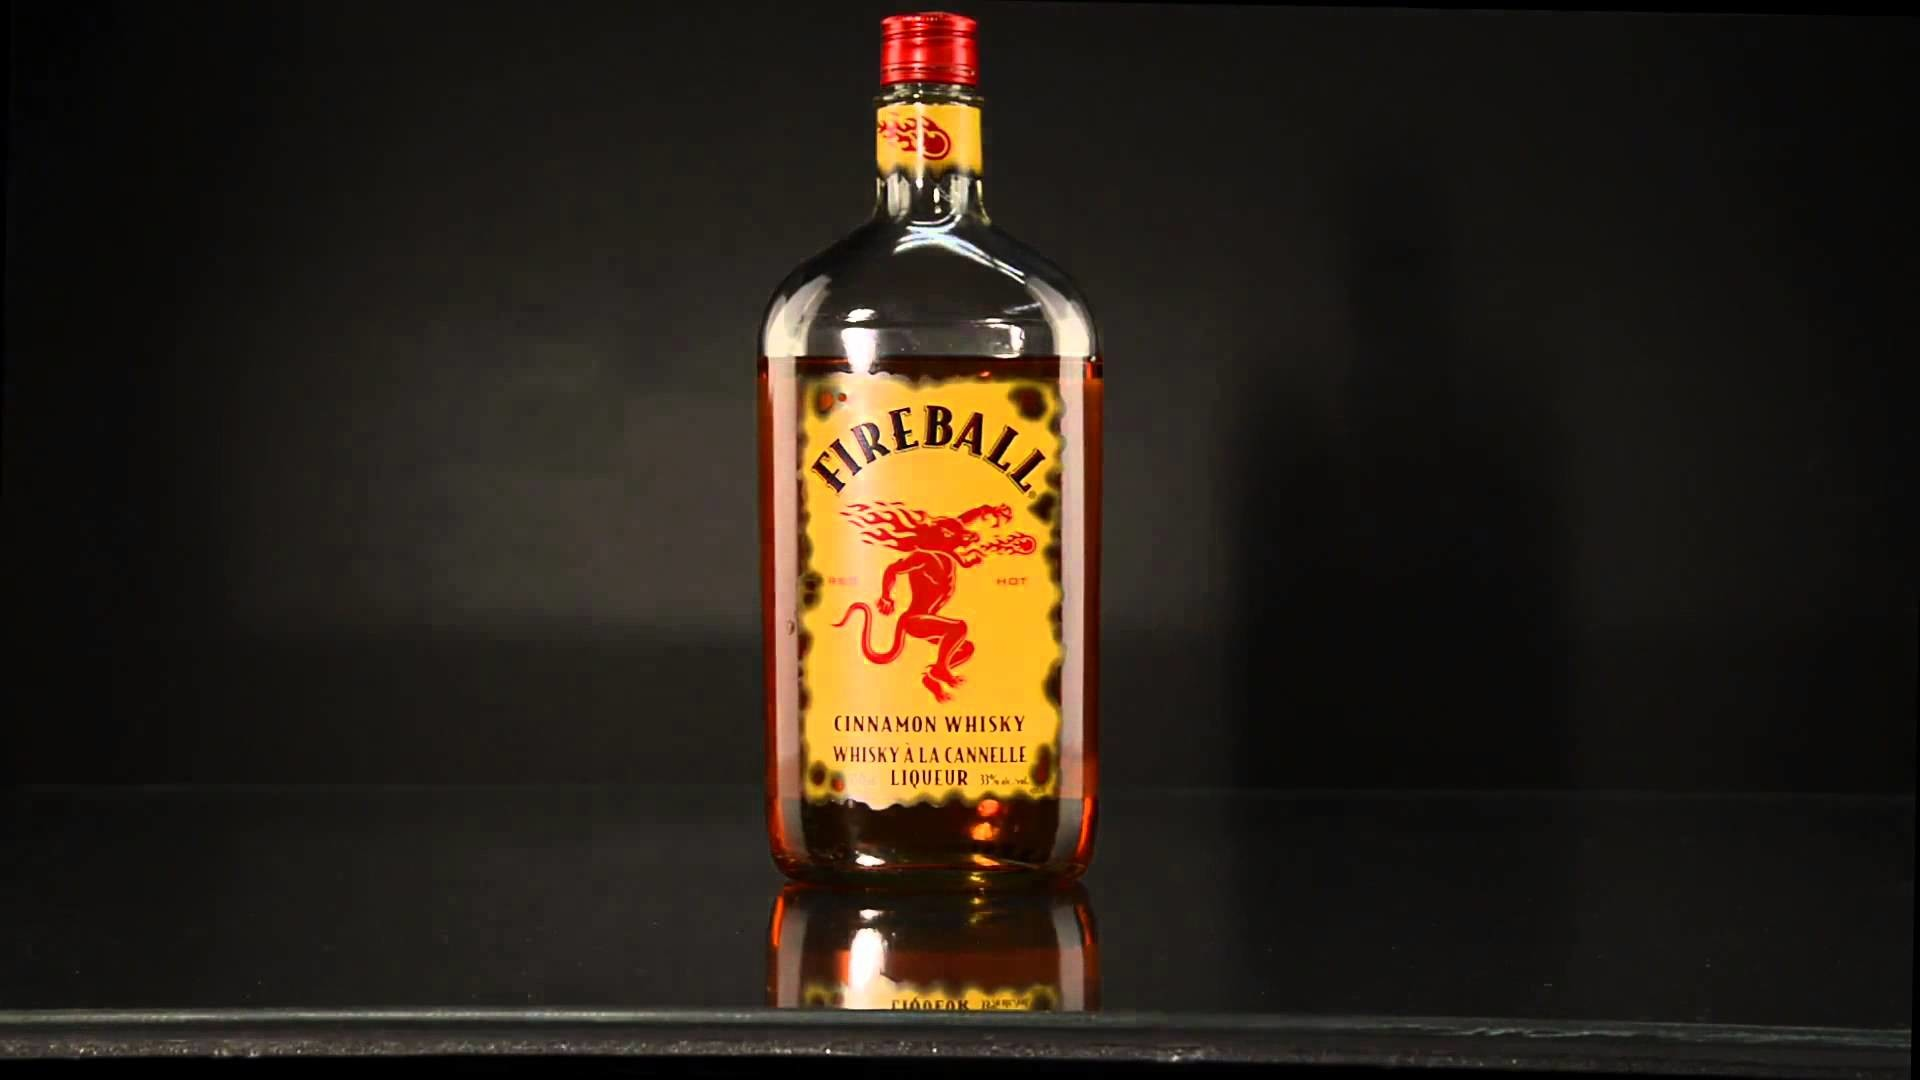 Fireball Whisky Wallpaper 74 images 1920x1080